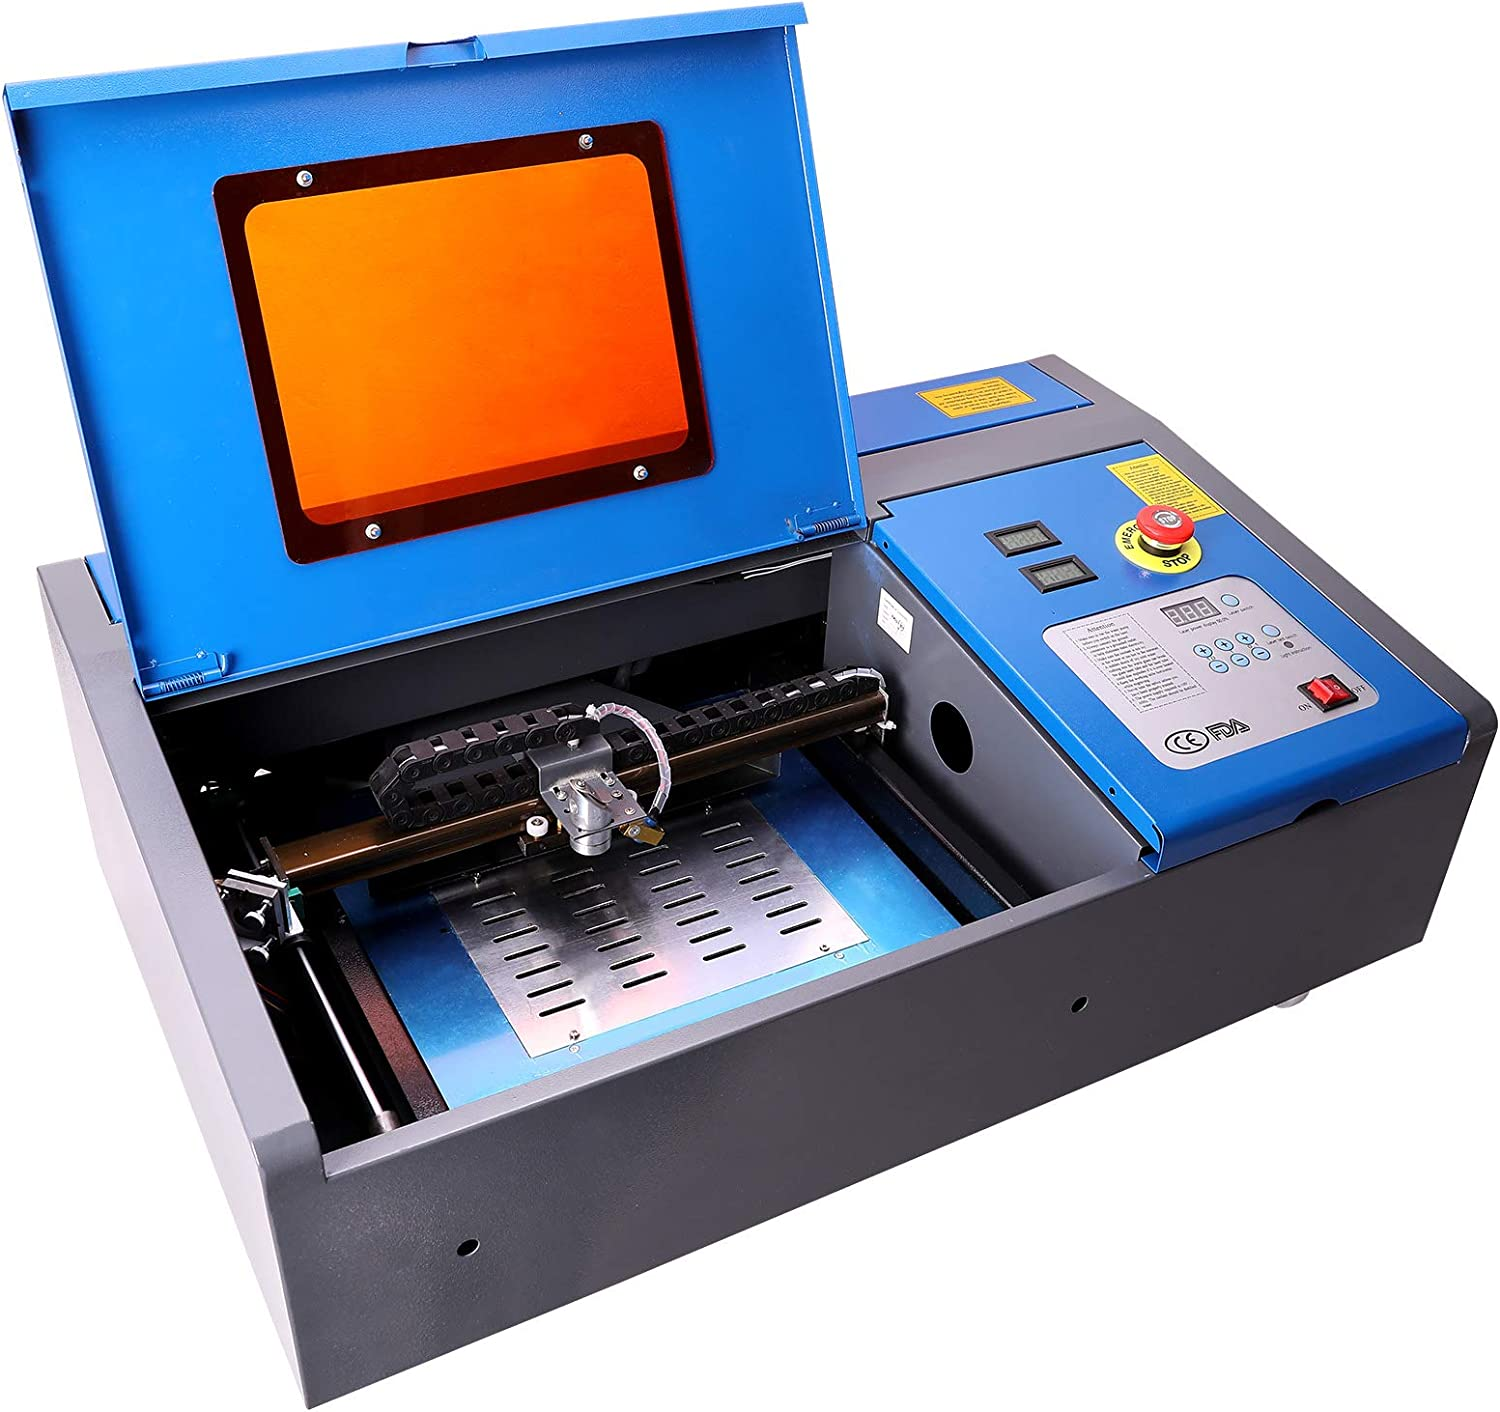 low-pricing OMTech 40W CO2 Laser Engraver Cutter with De 8 service 12in Area x Work